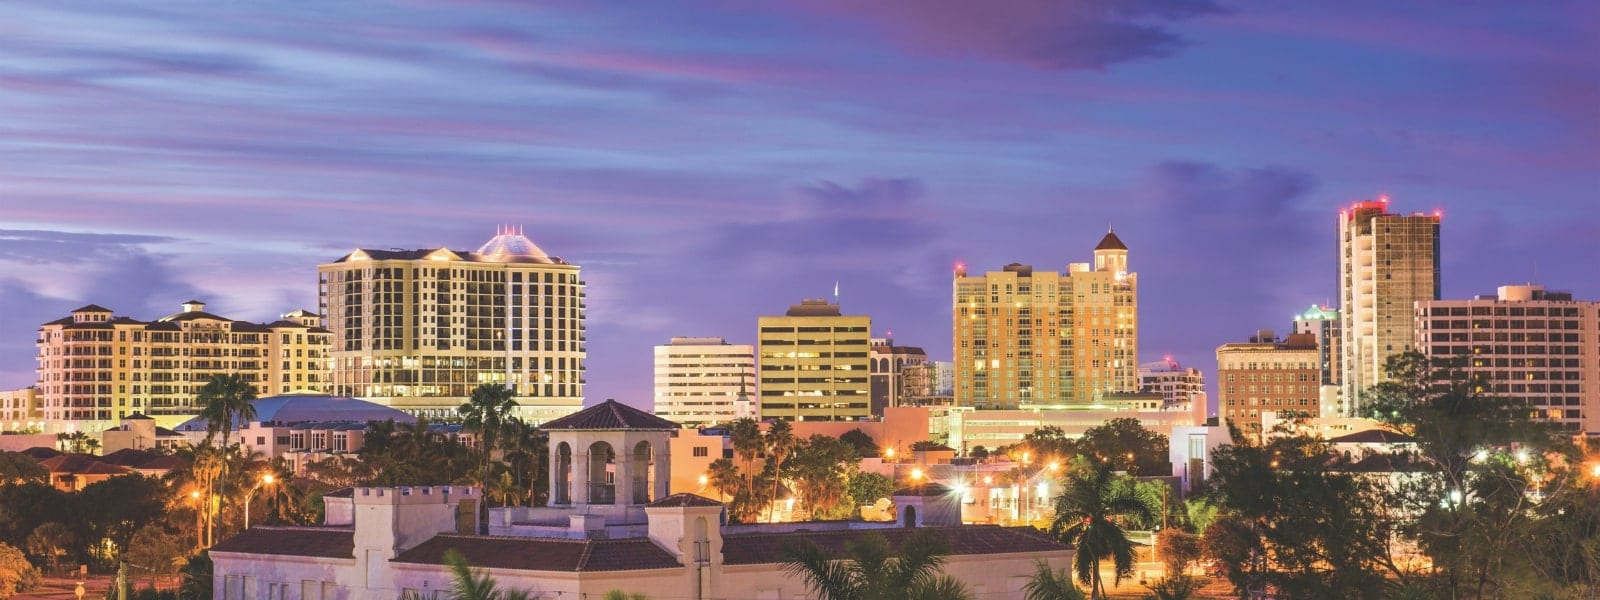 8 Fun Facts About Sarasota